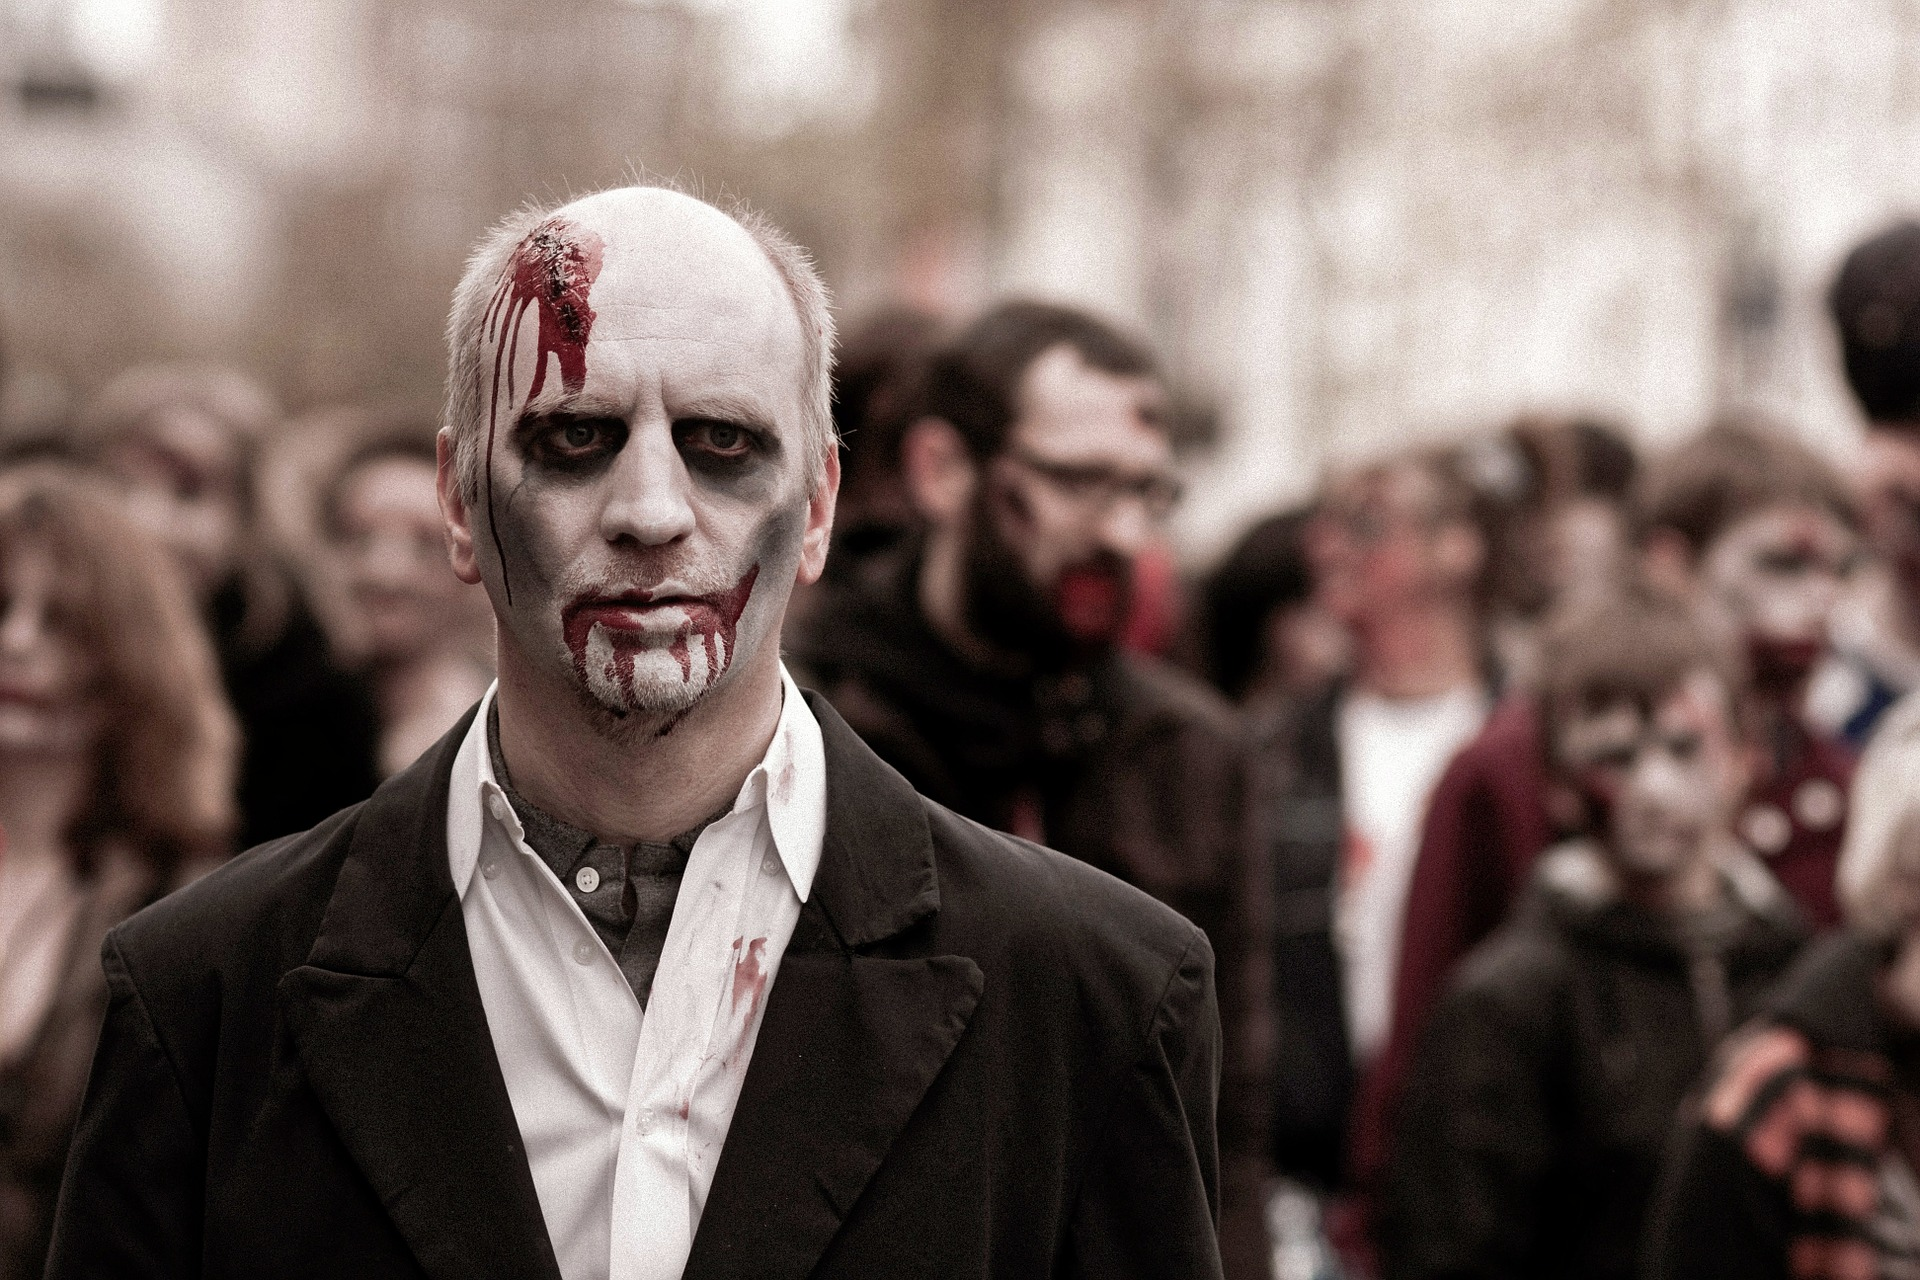 Picture of a man in suit dressed up as a zombie